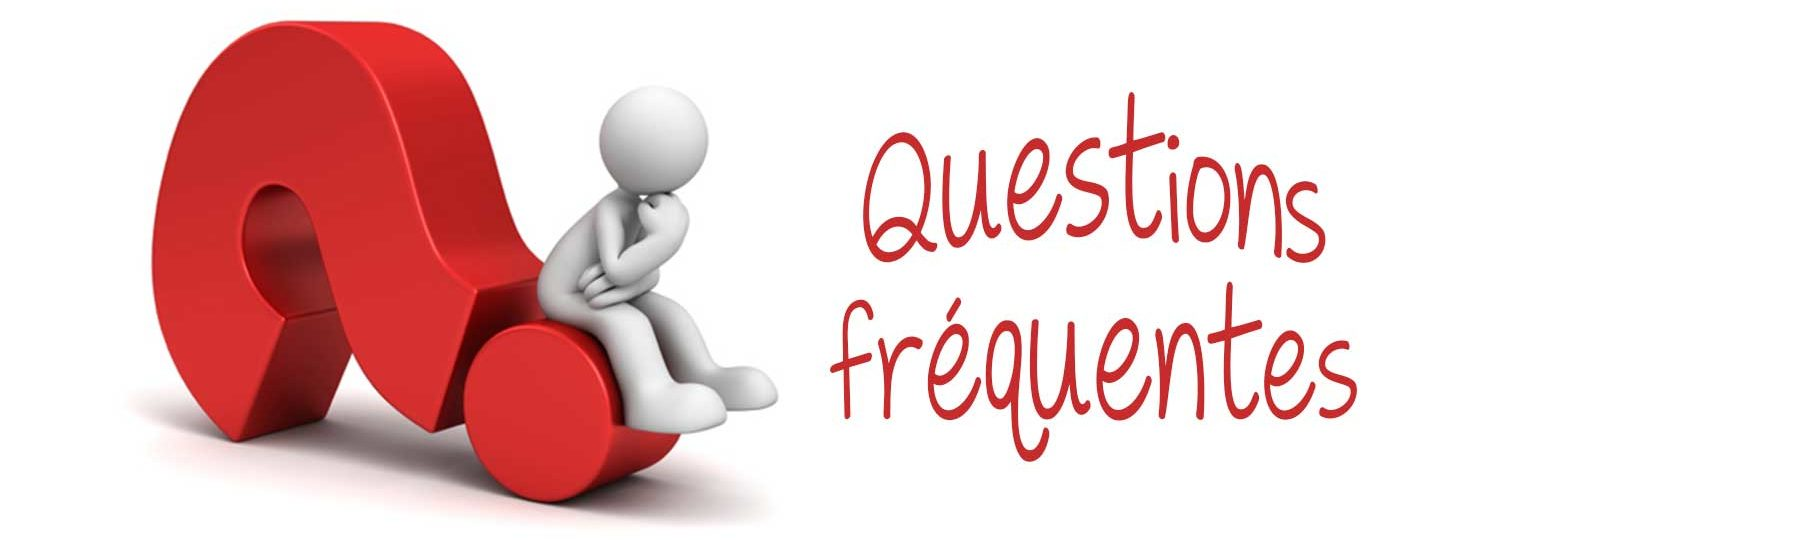 questions-frequentes-planete-yam.com-rennes-avis-commentaires-planete-yam-rennes